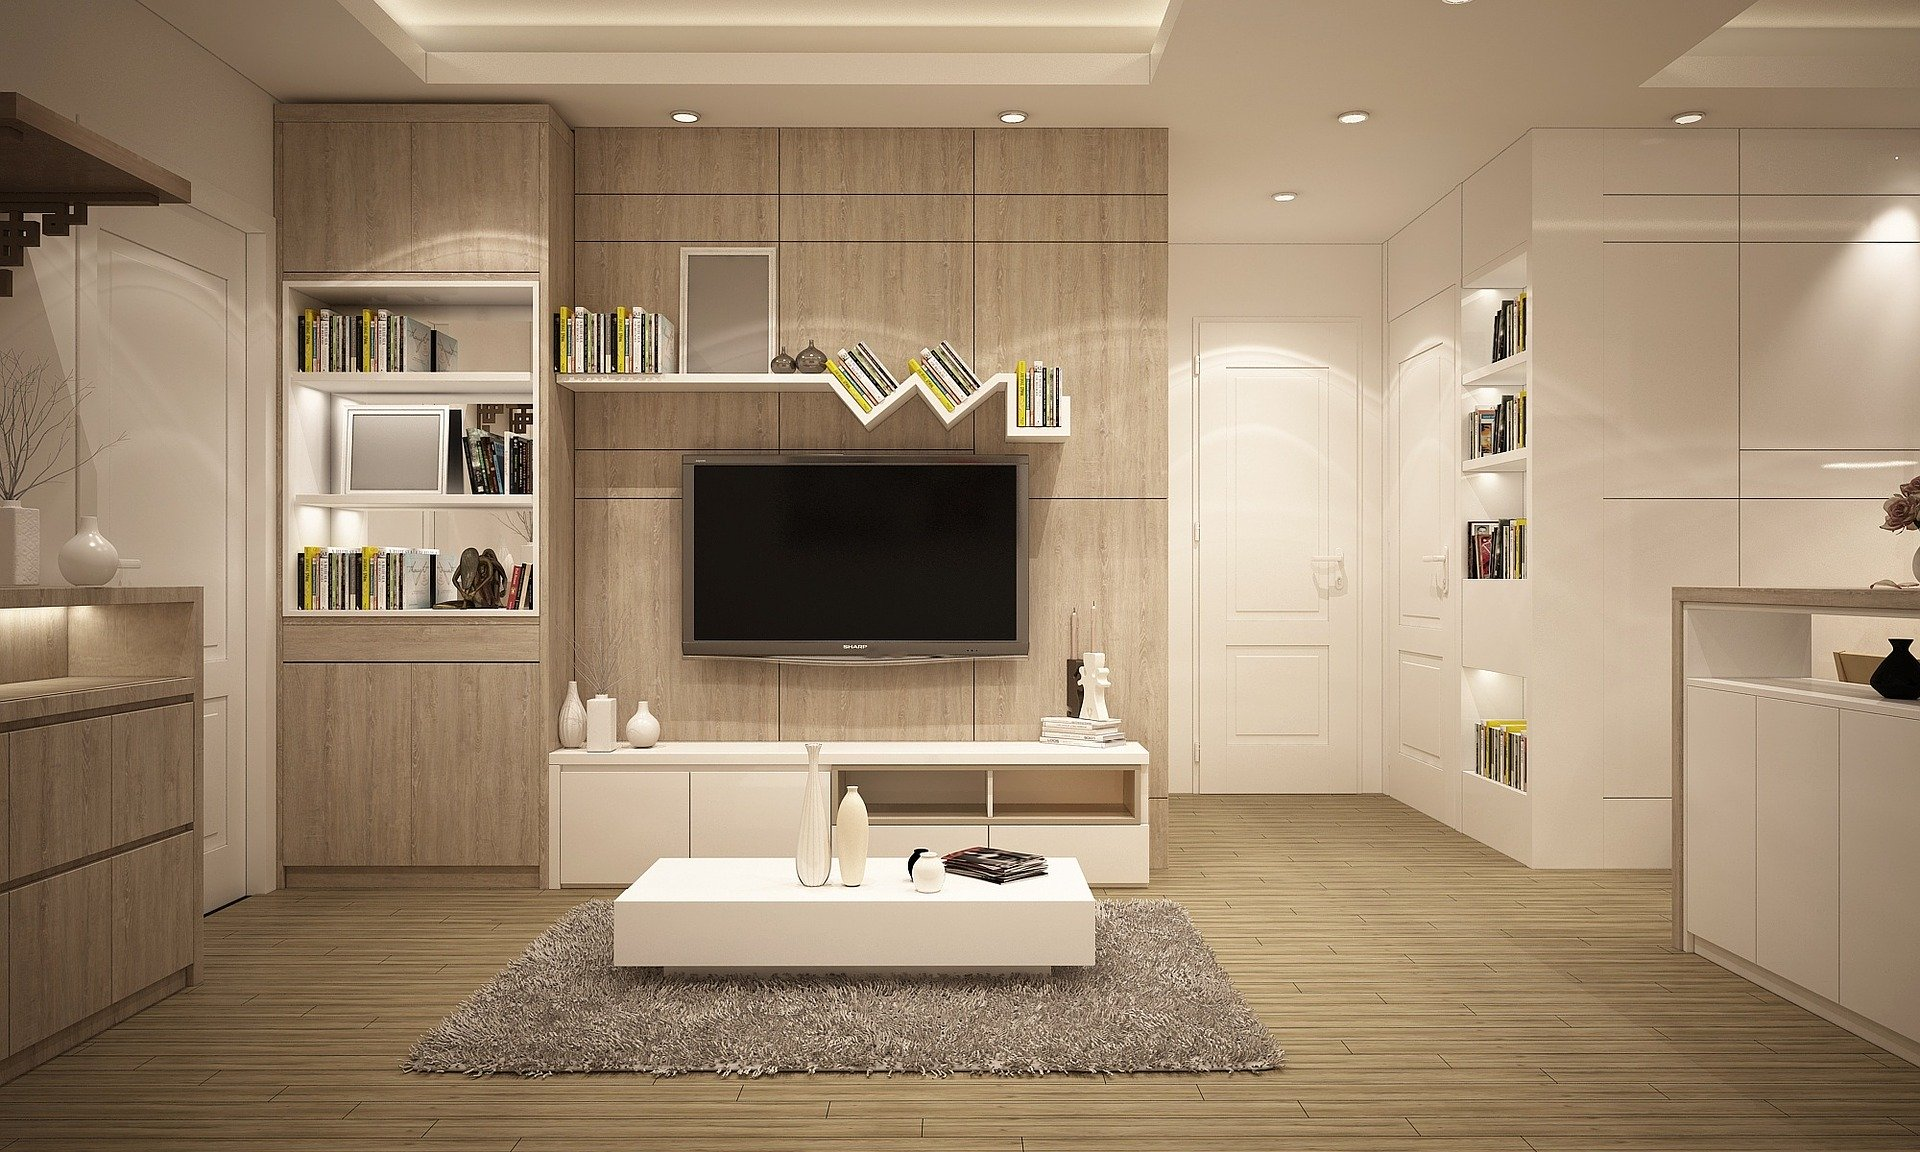 Professional Interior Designers Makes Your Space Beautiful